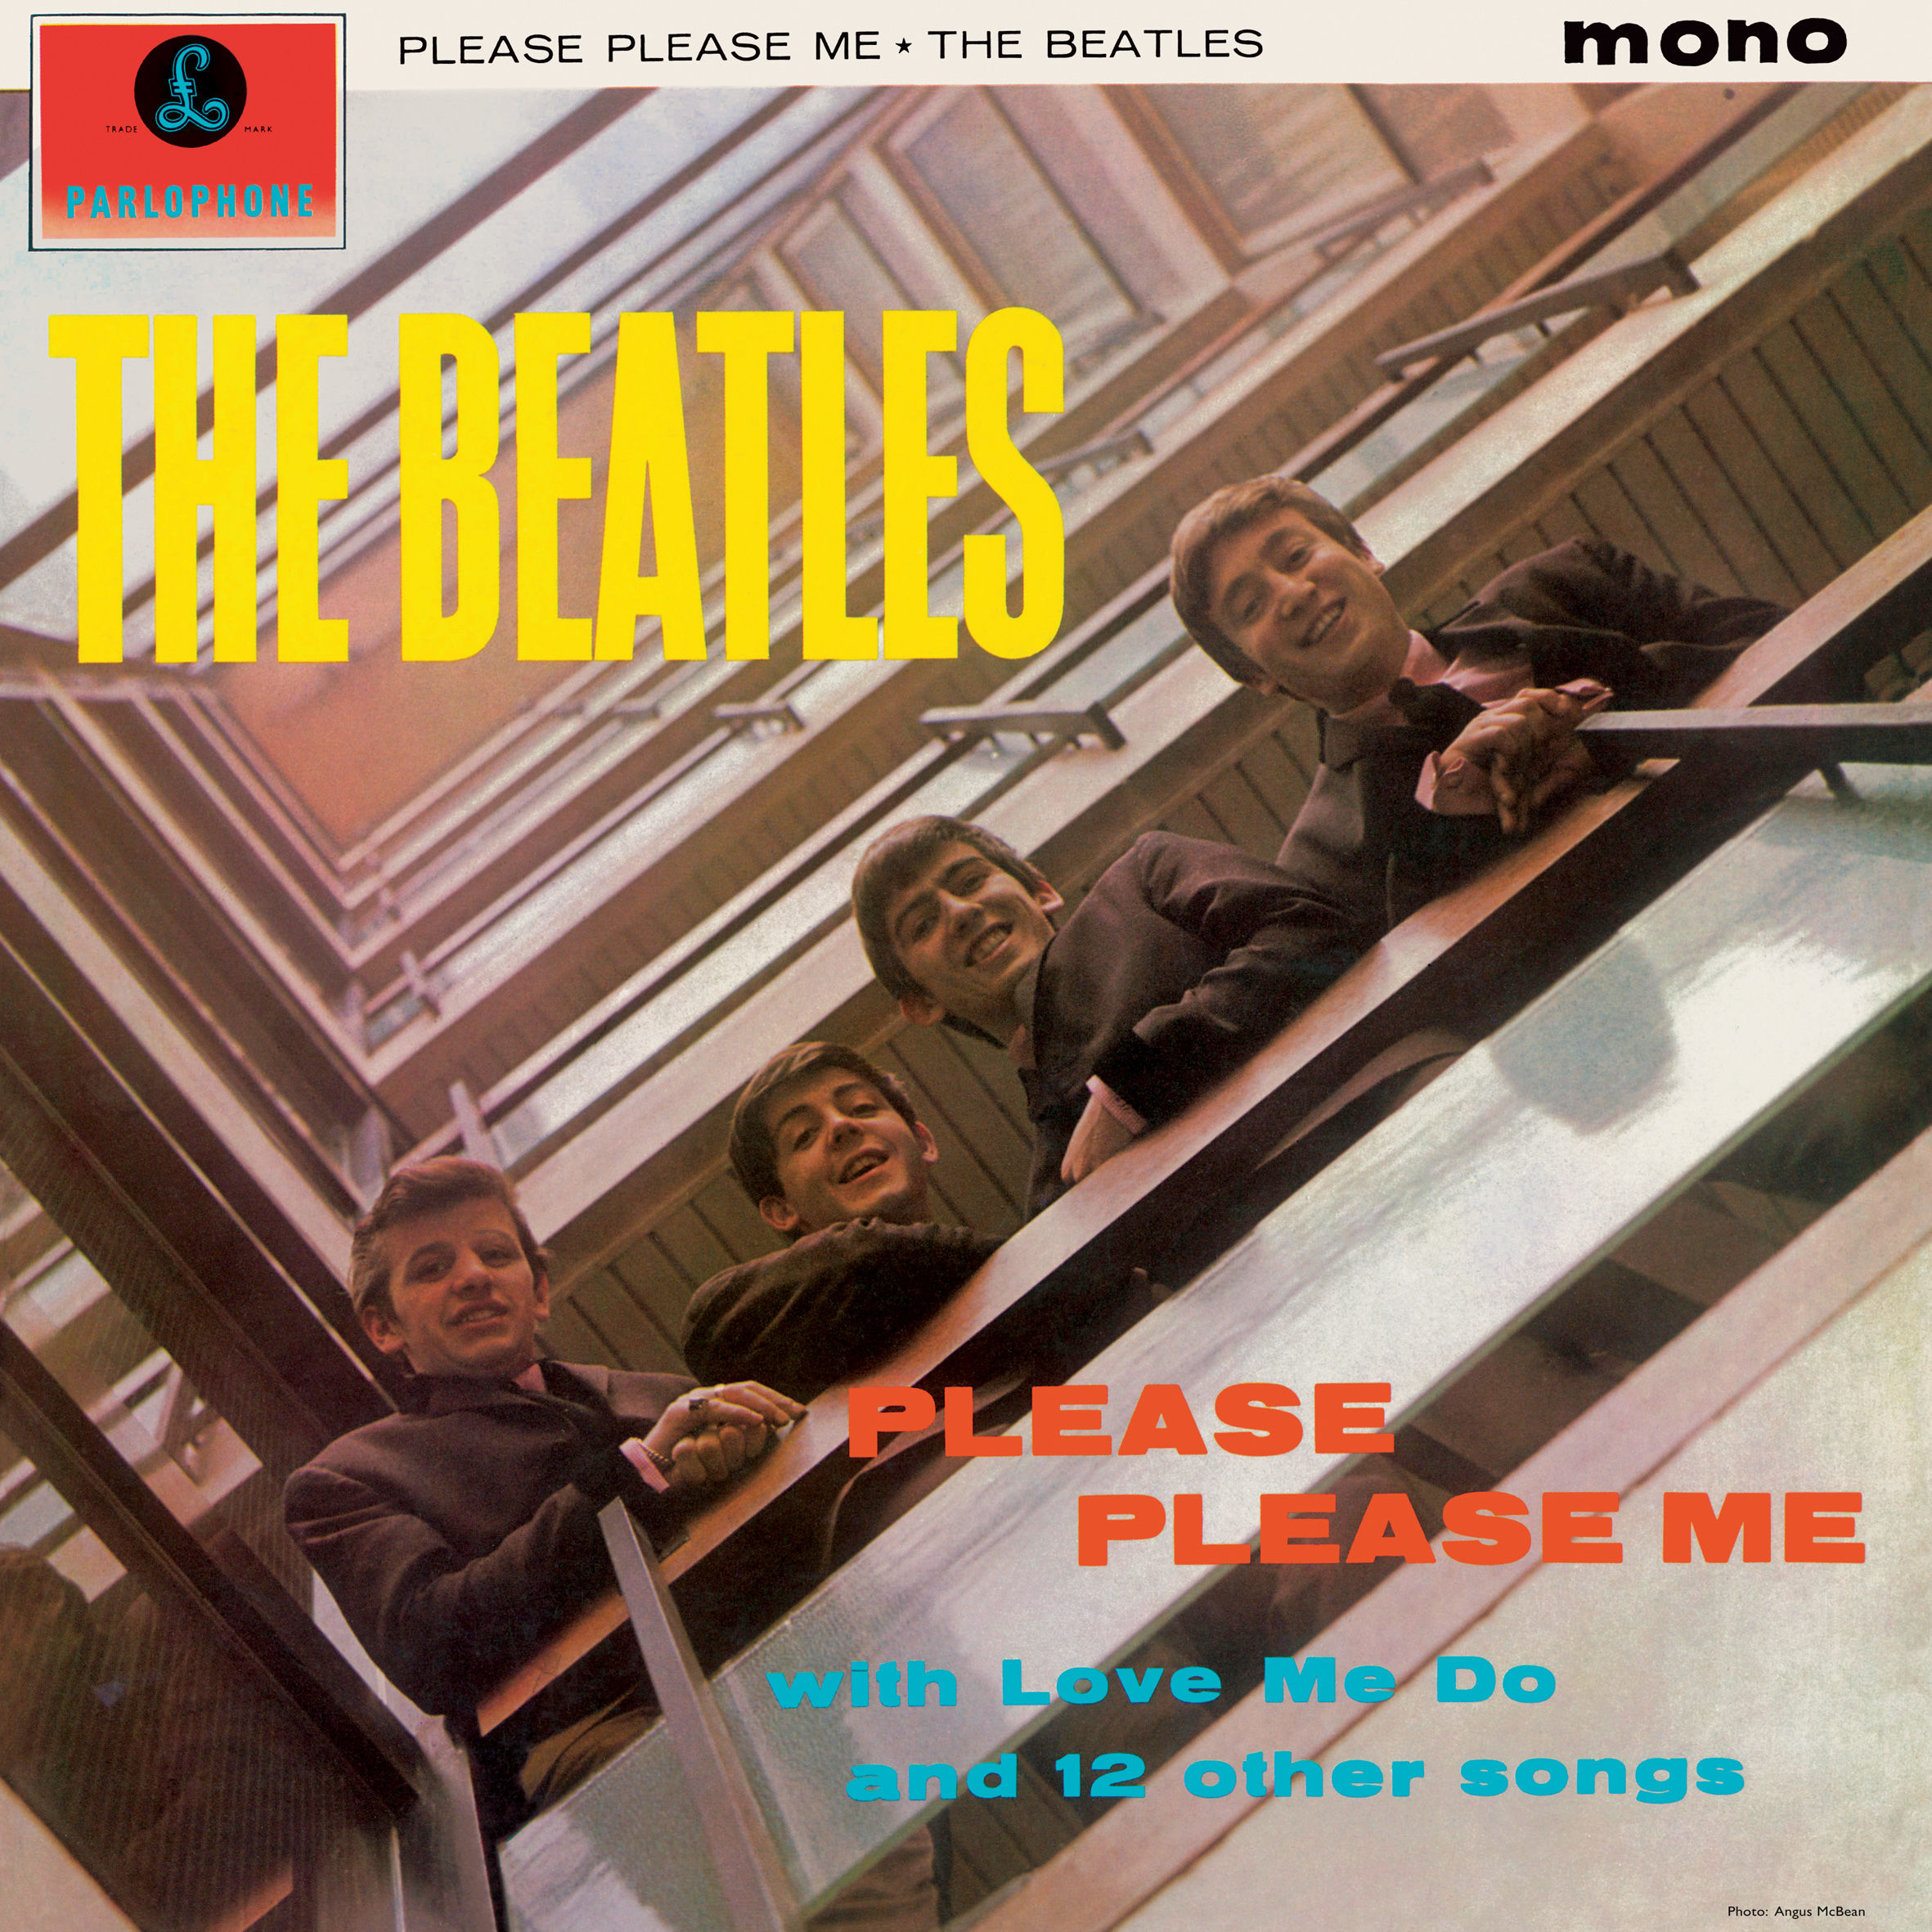 vinyl LP THE BEATLES in Mono - Please Please Me